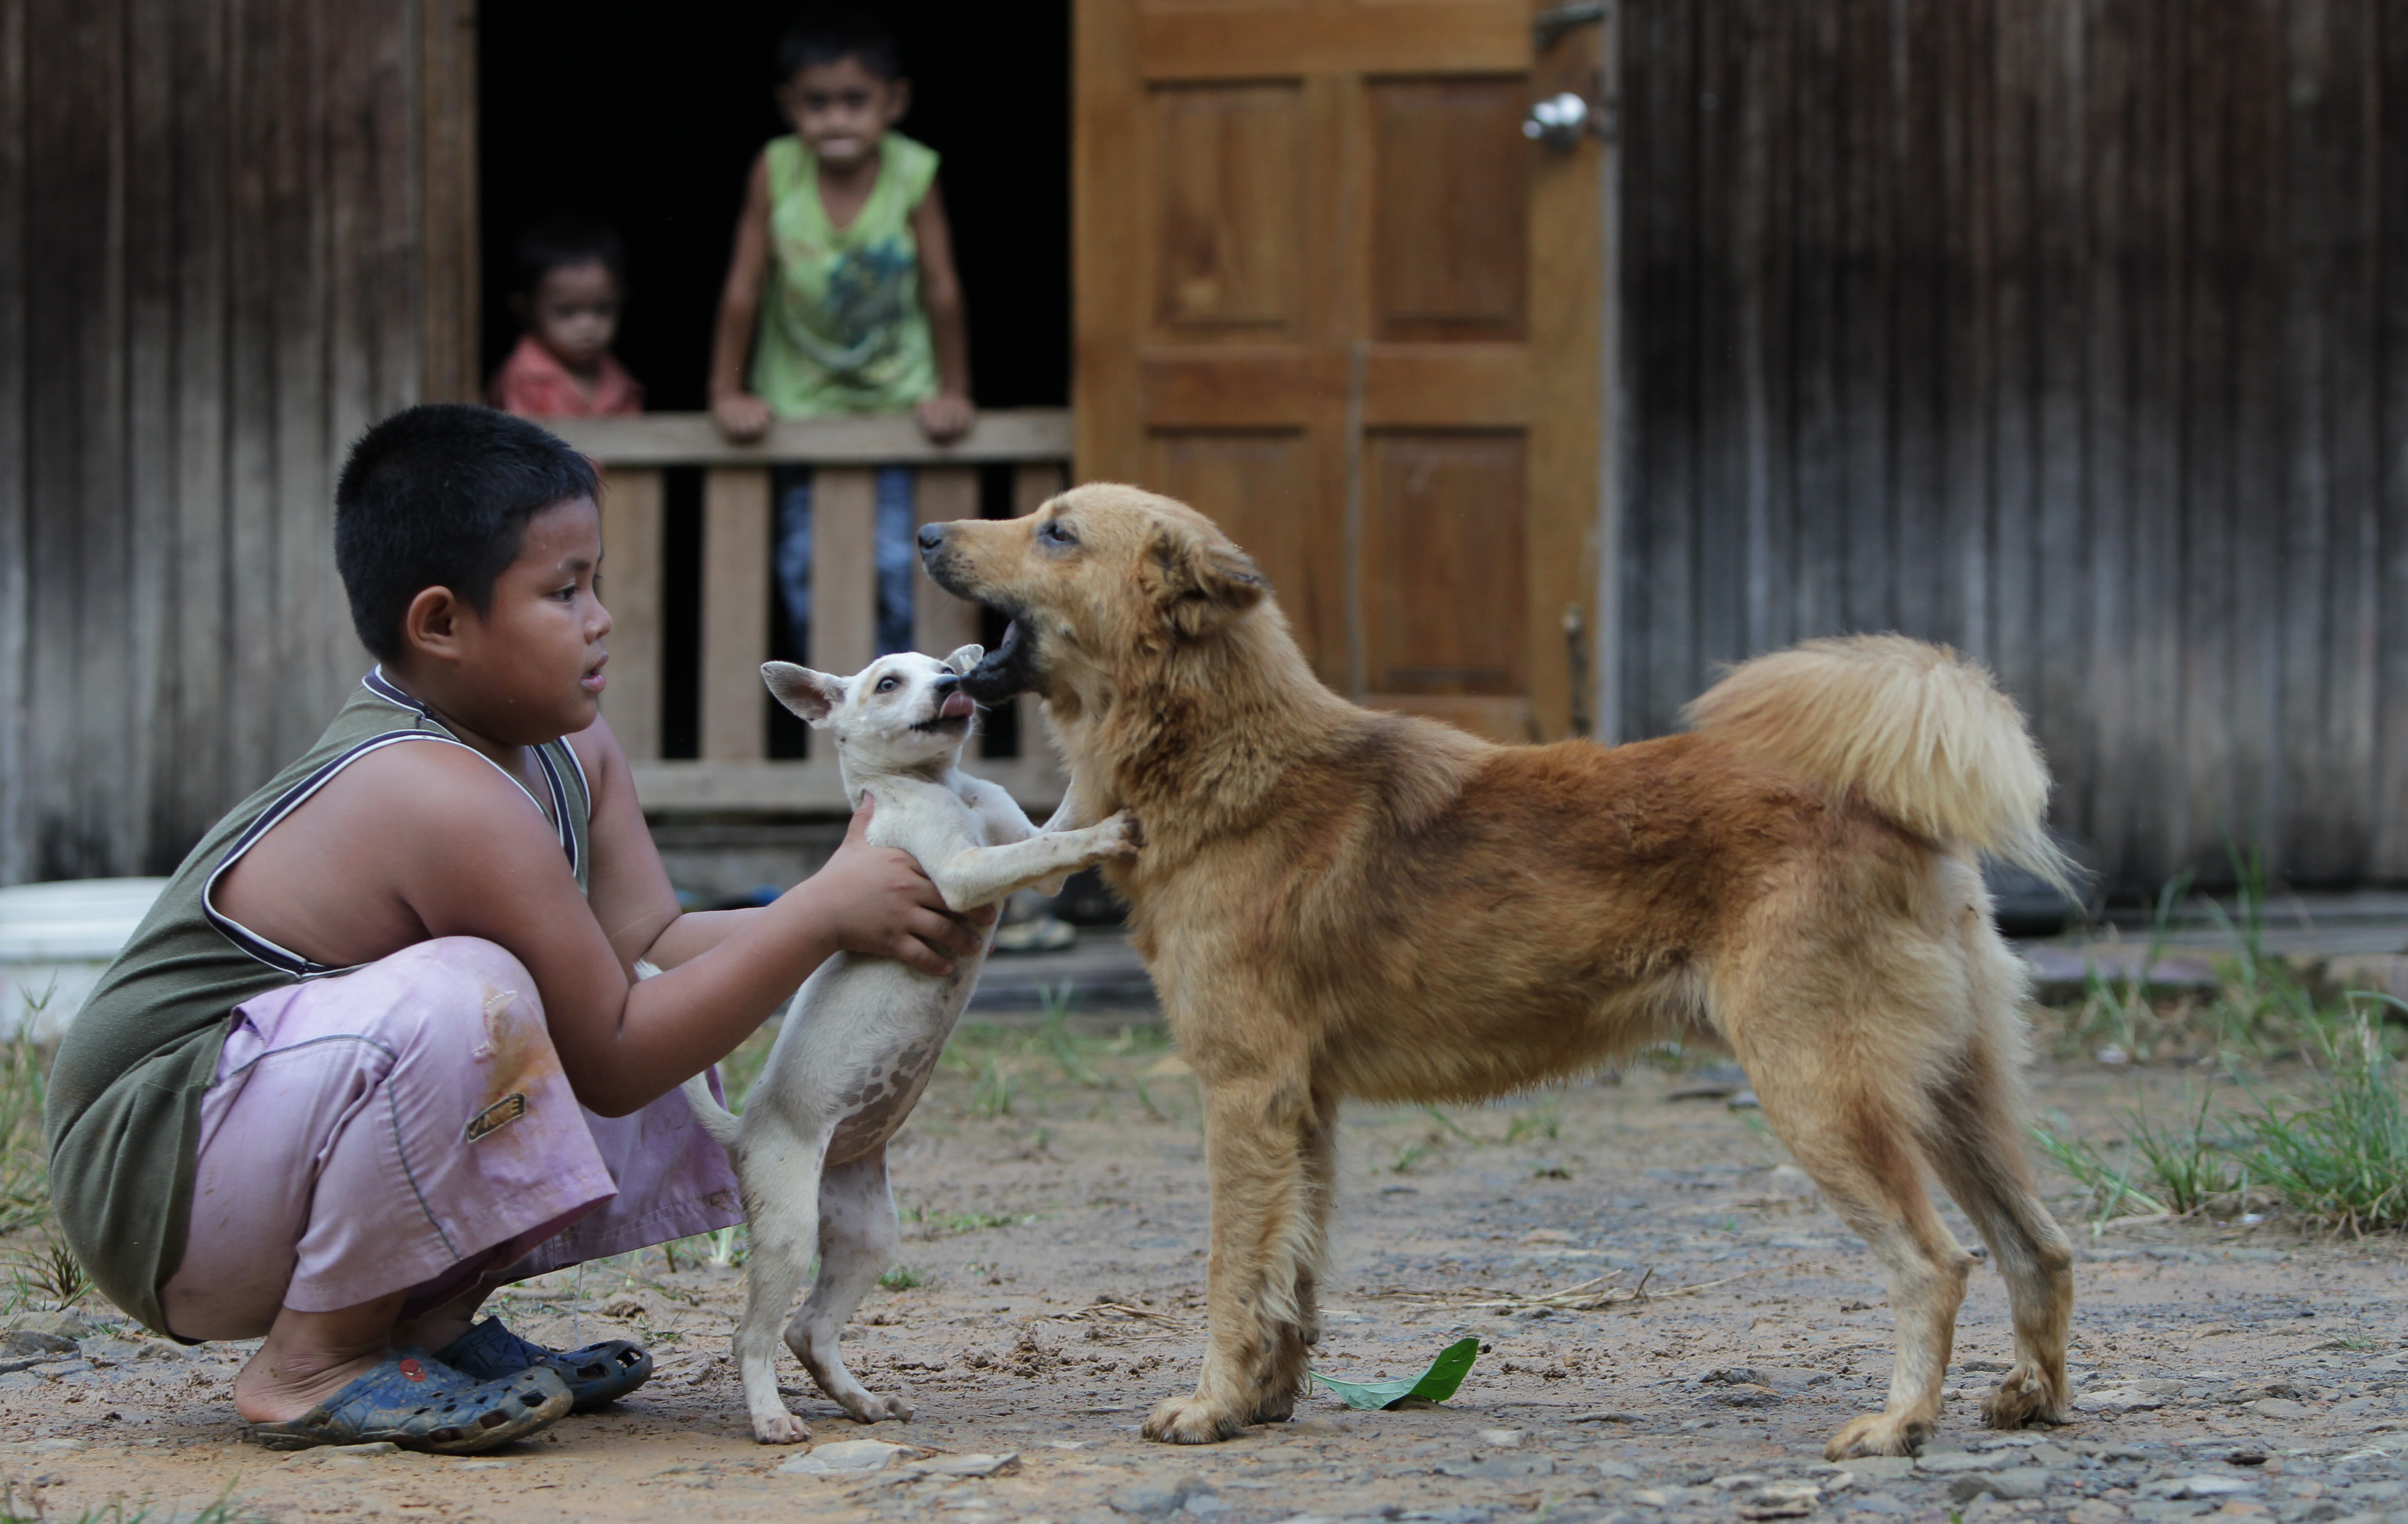 A boy plays with dogs outside his long house in Nahajale, Malaysia's Sarawak region, on Sept. 25, 2011